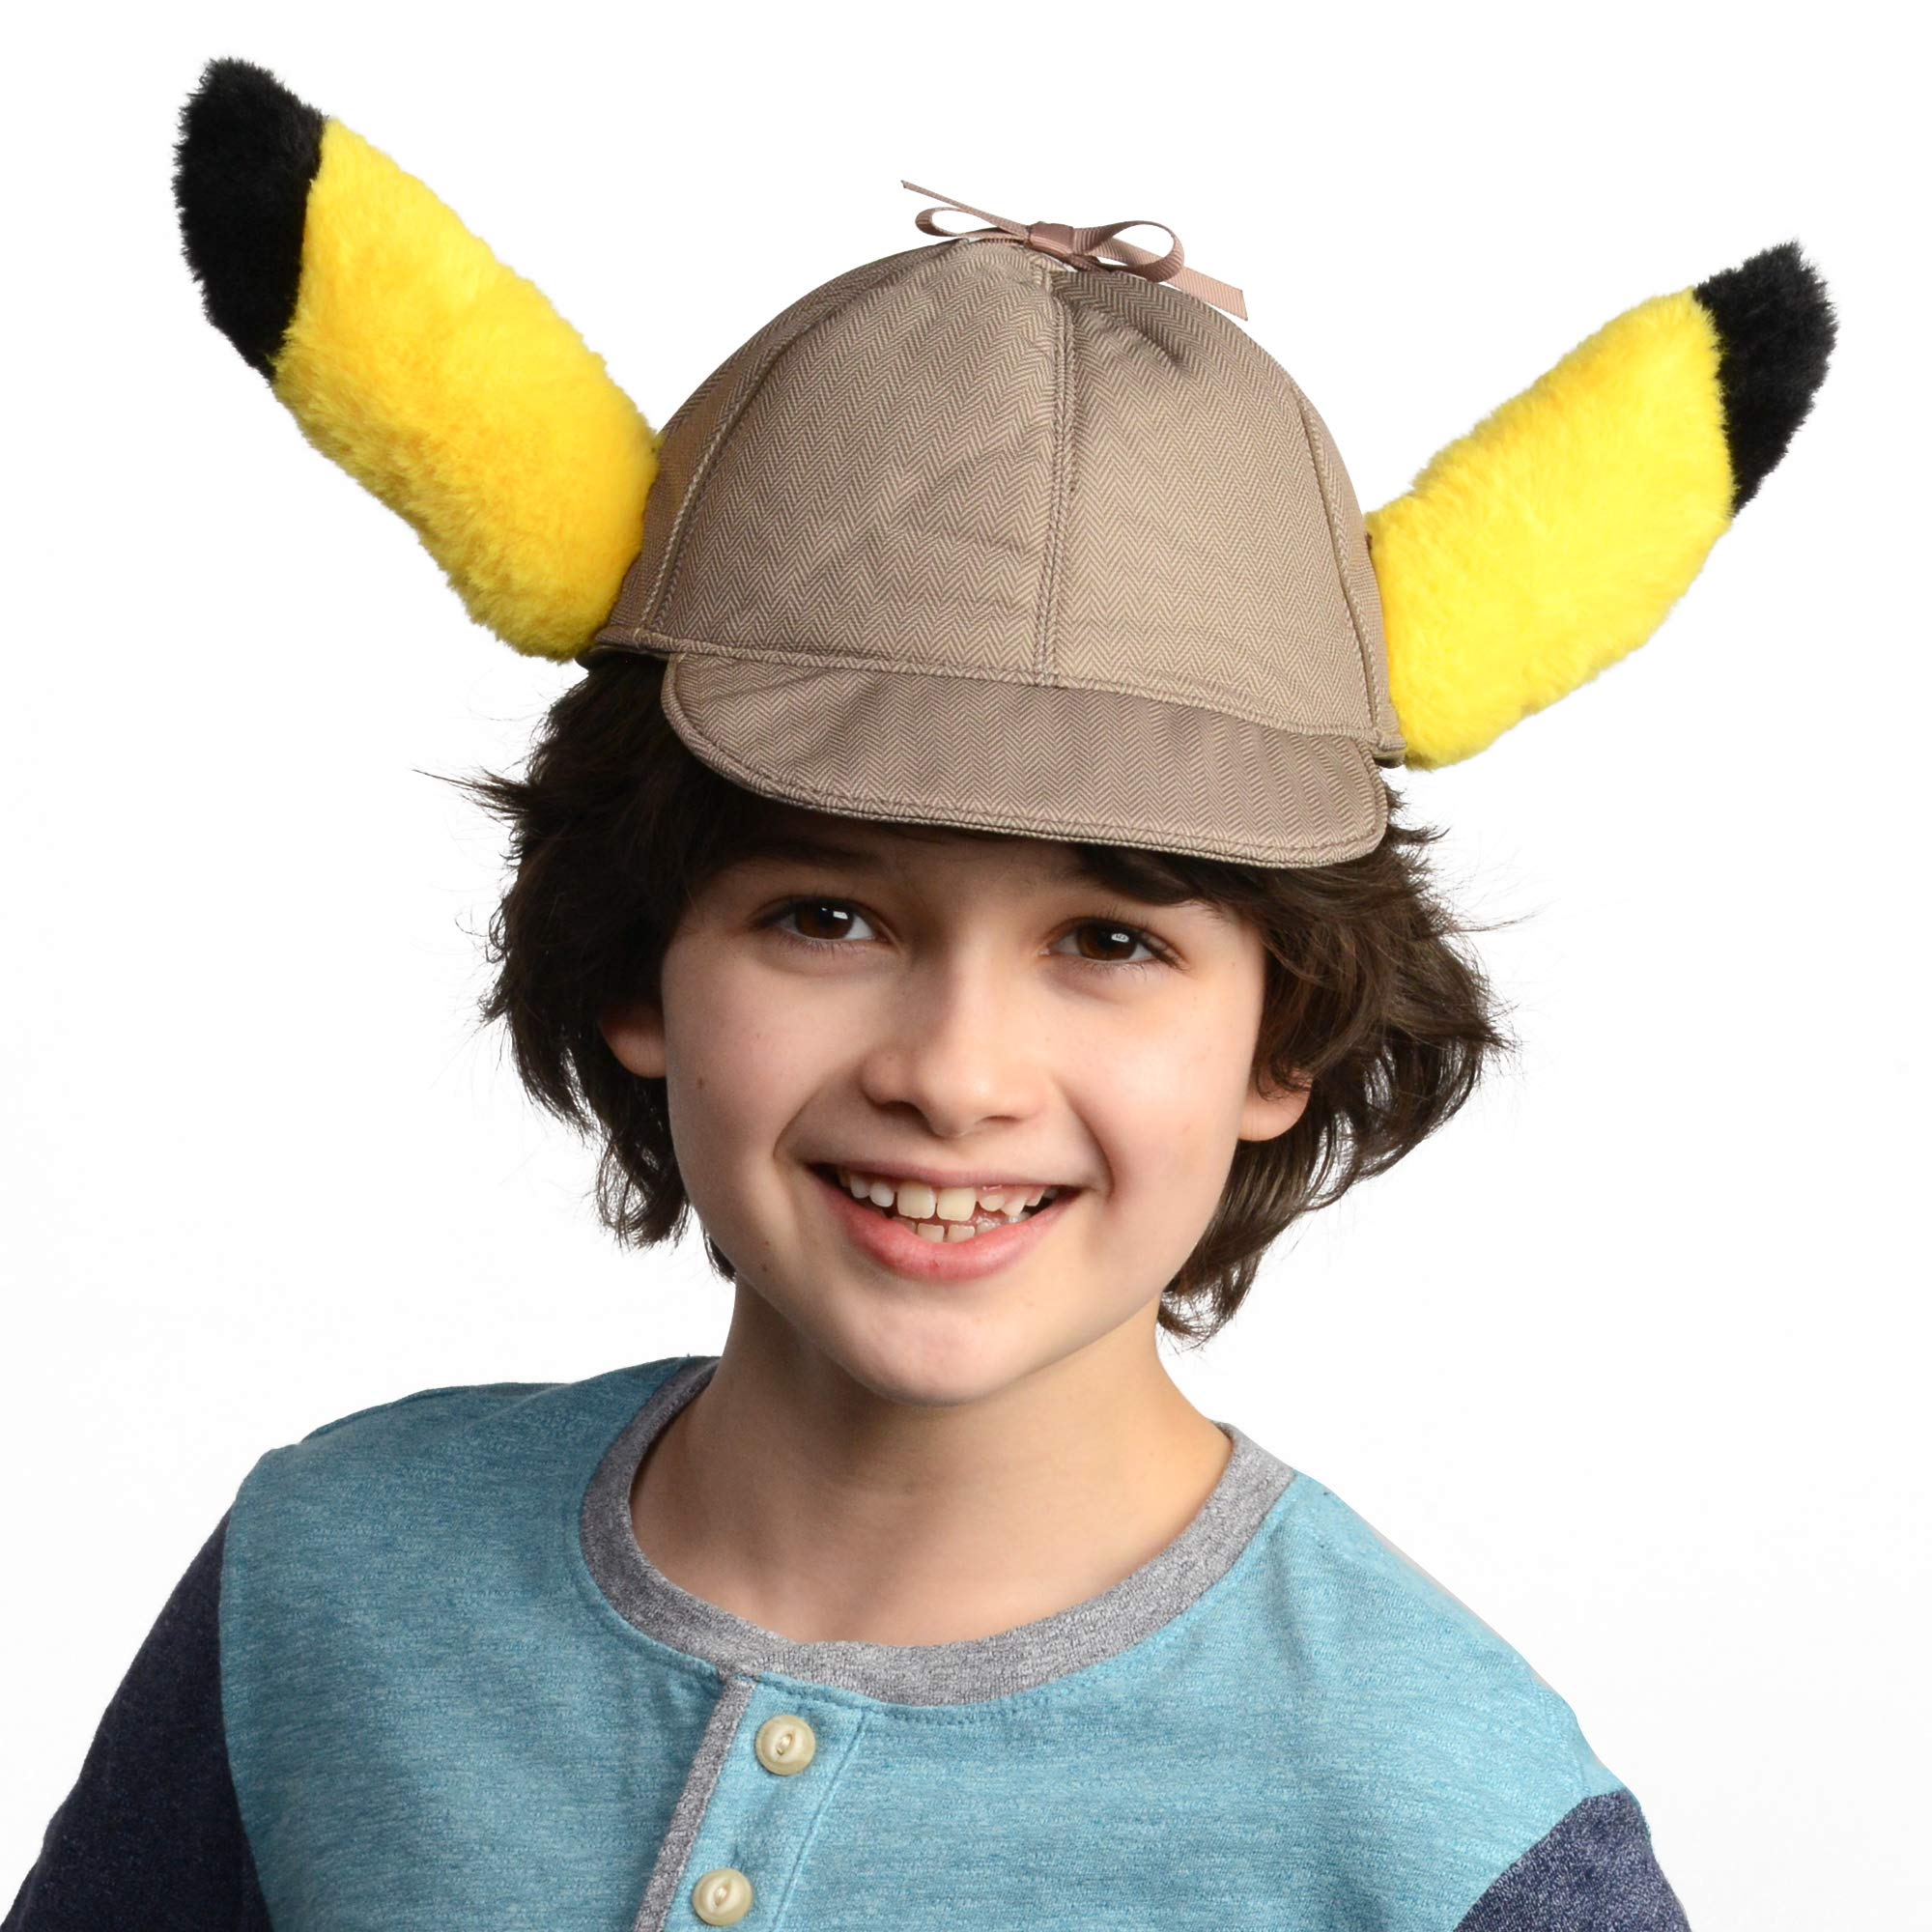 Pokémon Detective Pikachu Movie Hat with Ears - Perfect for Costumes, Dress Up and Halloween - One Size Fits Most - Age 4+ by PoKéMoN